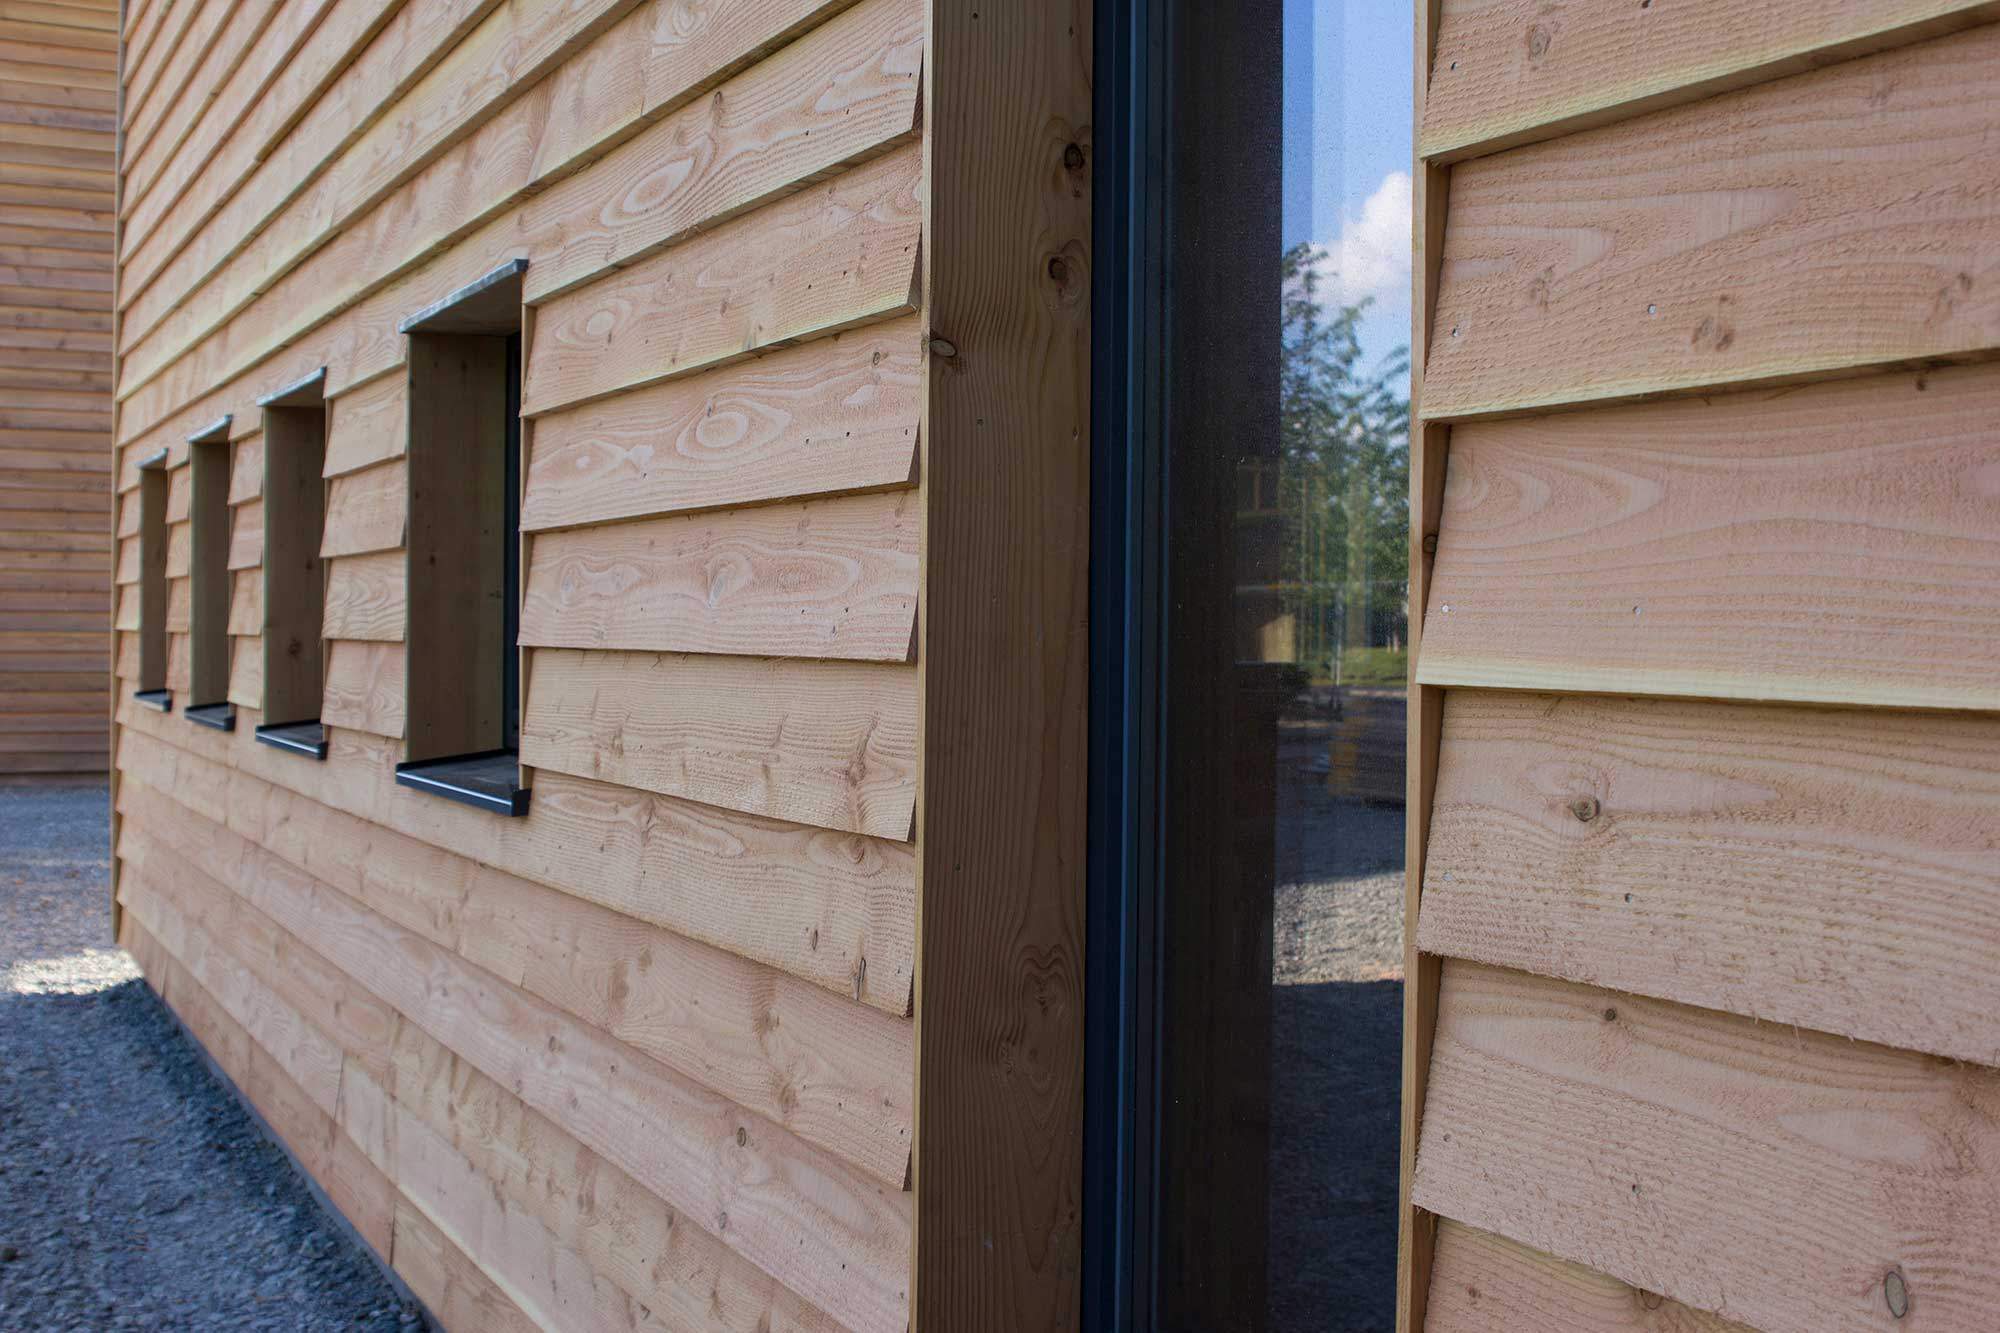 PYC Passivhaus office windows and timber cladding